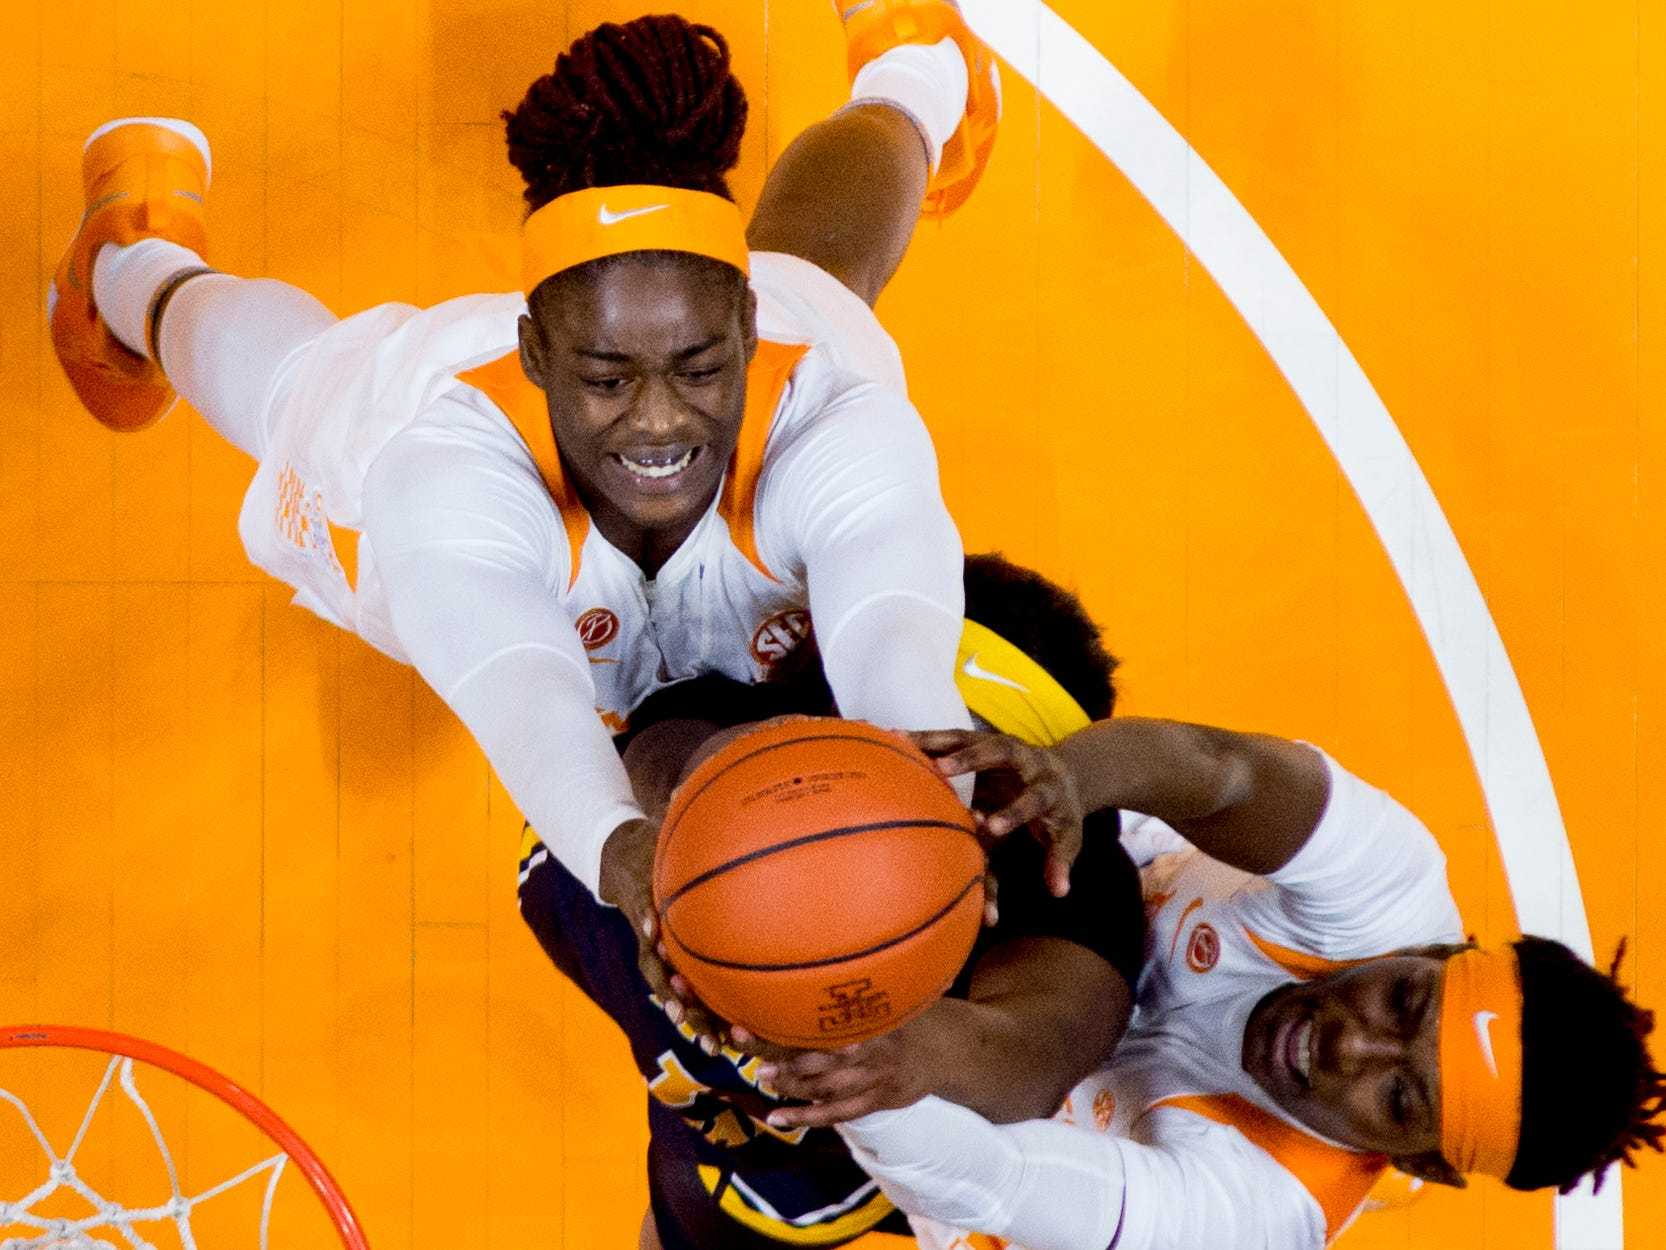 Tennessee forward Cheridene Green (15) and Tennessee guard/forward Rennia Davis (0) attempt to grab the ball from Murray State forward Evelyn Adebayo (14) during a game between the Tennessee Lady Vols and Murray State at Thompson-Boling Arena in Knoxville, Tennessee on Friday, December 28, 2018.